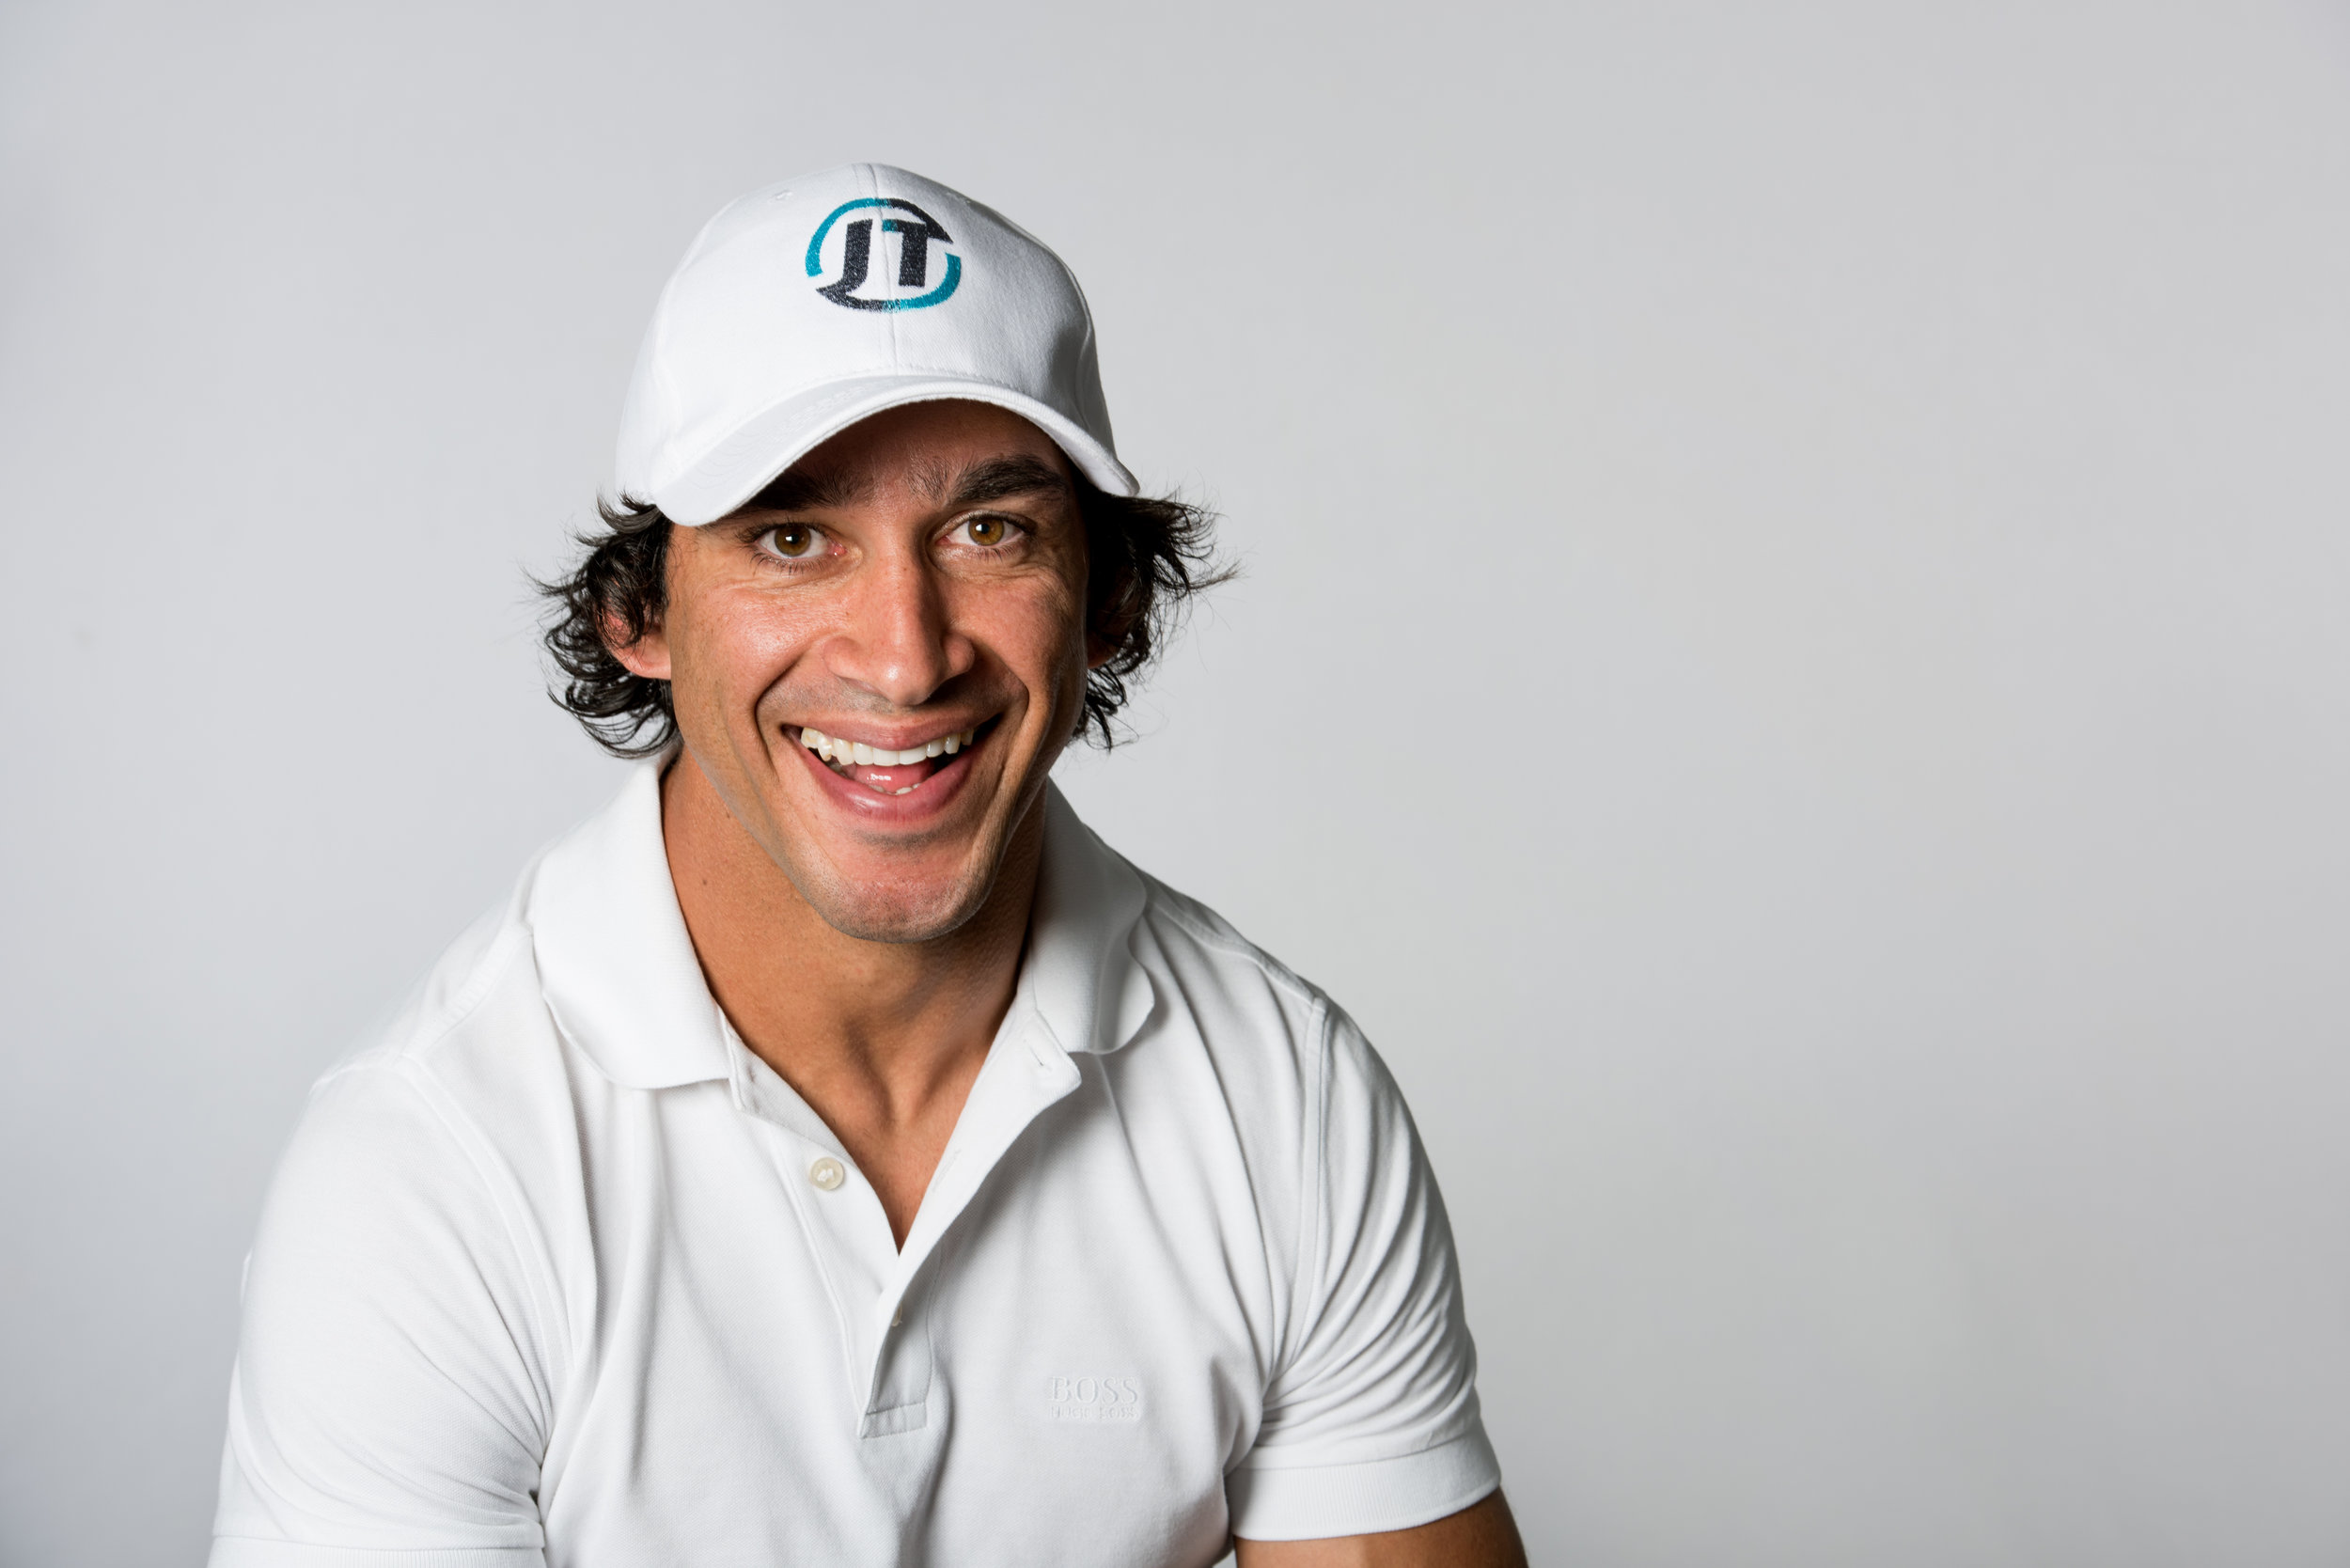 Johnathan Thurston AM, former rugby league player, now ambassador and Indigenous role model.